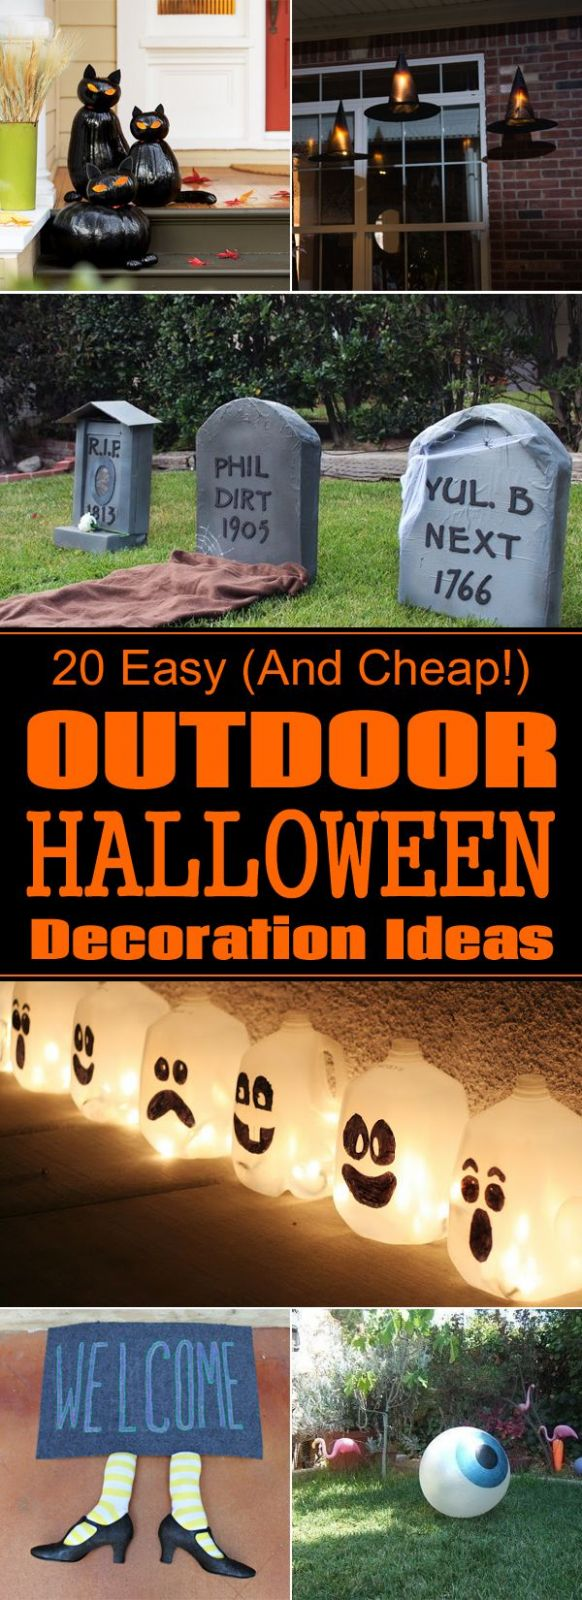 12 Easy (And Cheap!) DIY Outdoor Halloween Decoration Ideas ...